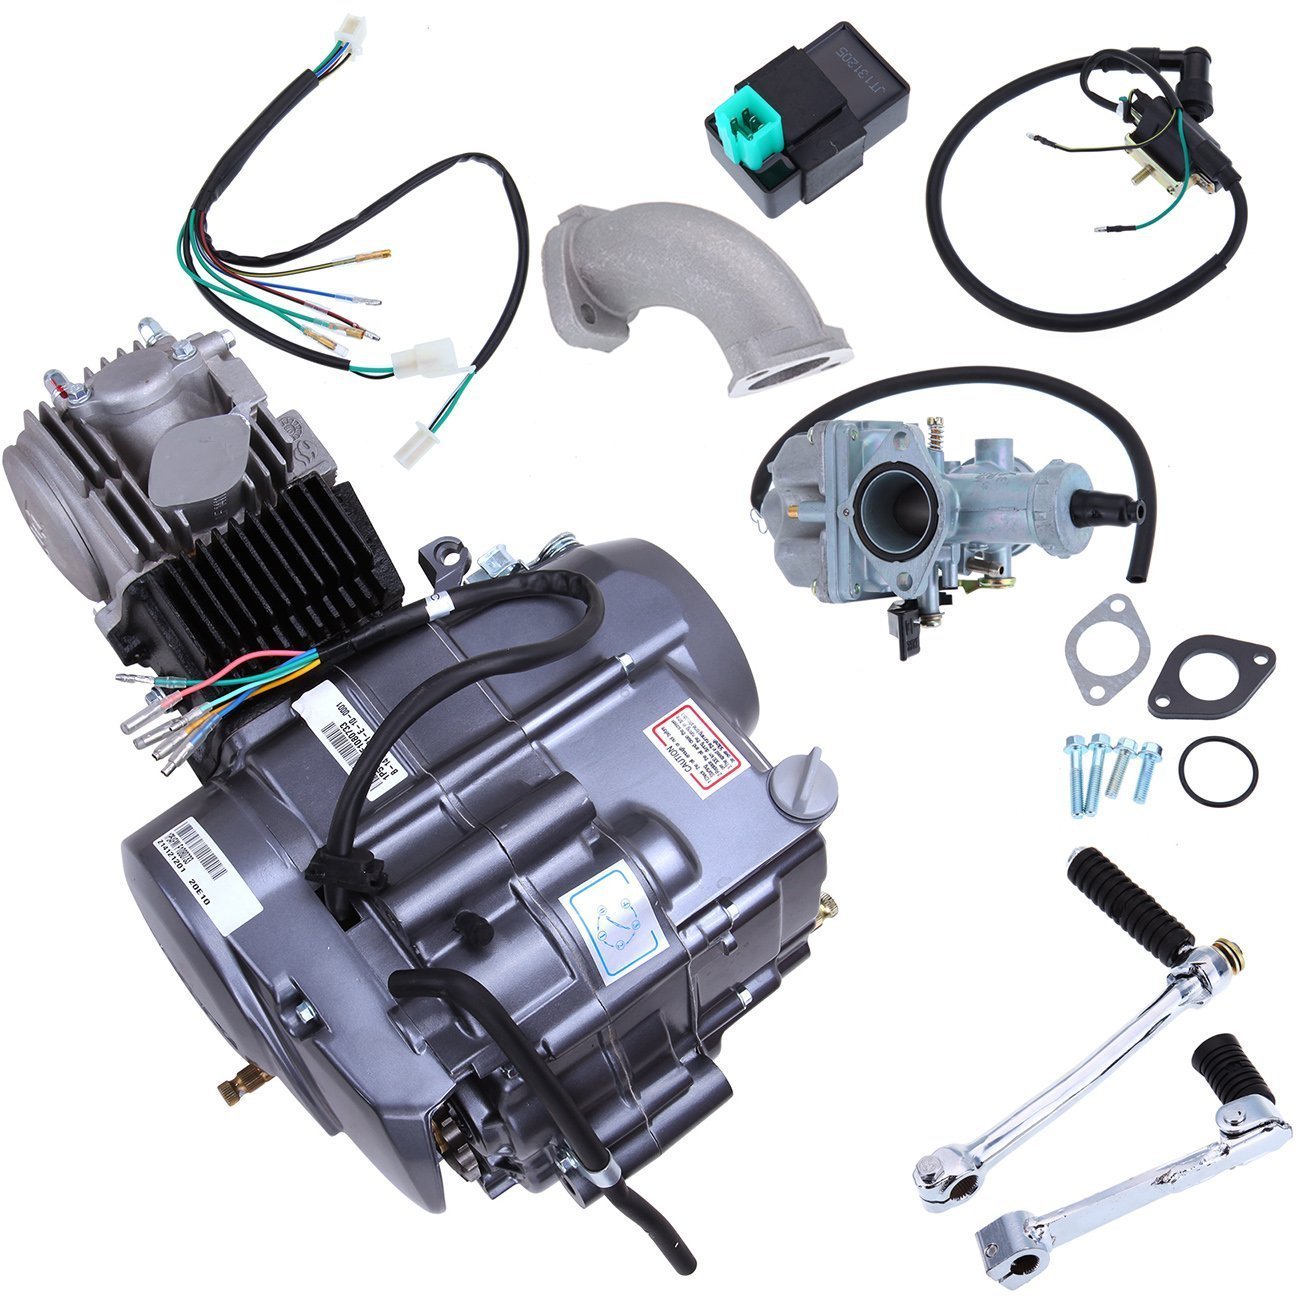 Iglobalbuy 125cc Long Case 4 Stroke 1p52fmi K 124cm3 Wiring Diagram For 125 Cc Lifan To Honda Atc 70 Dirt Bike Engine Motor Carb Complete Kit Xr50 Crf50 Xr Crf 50 Automotive